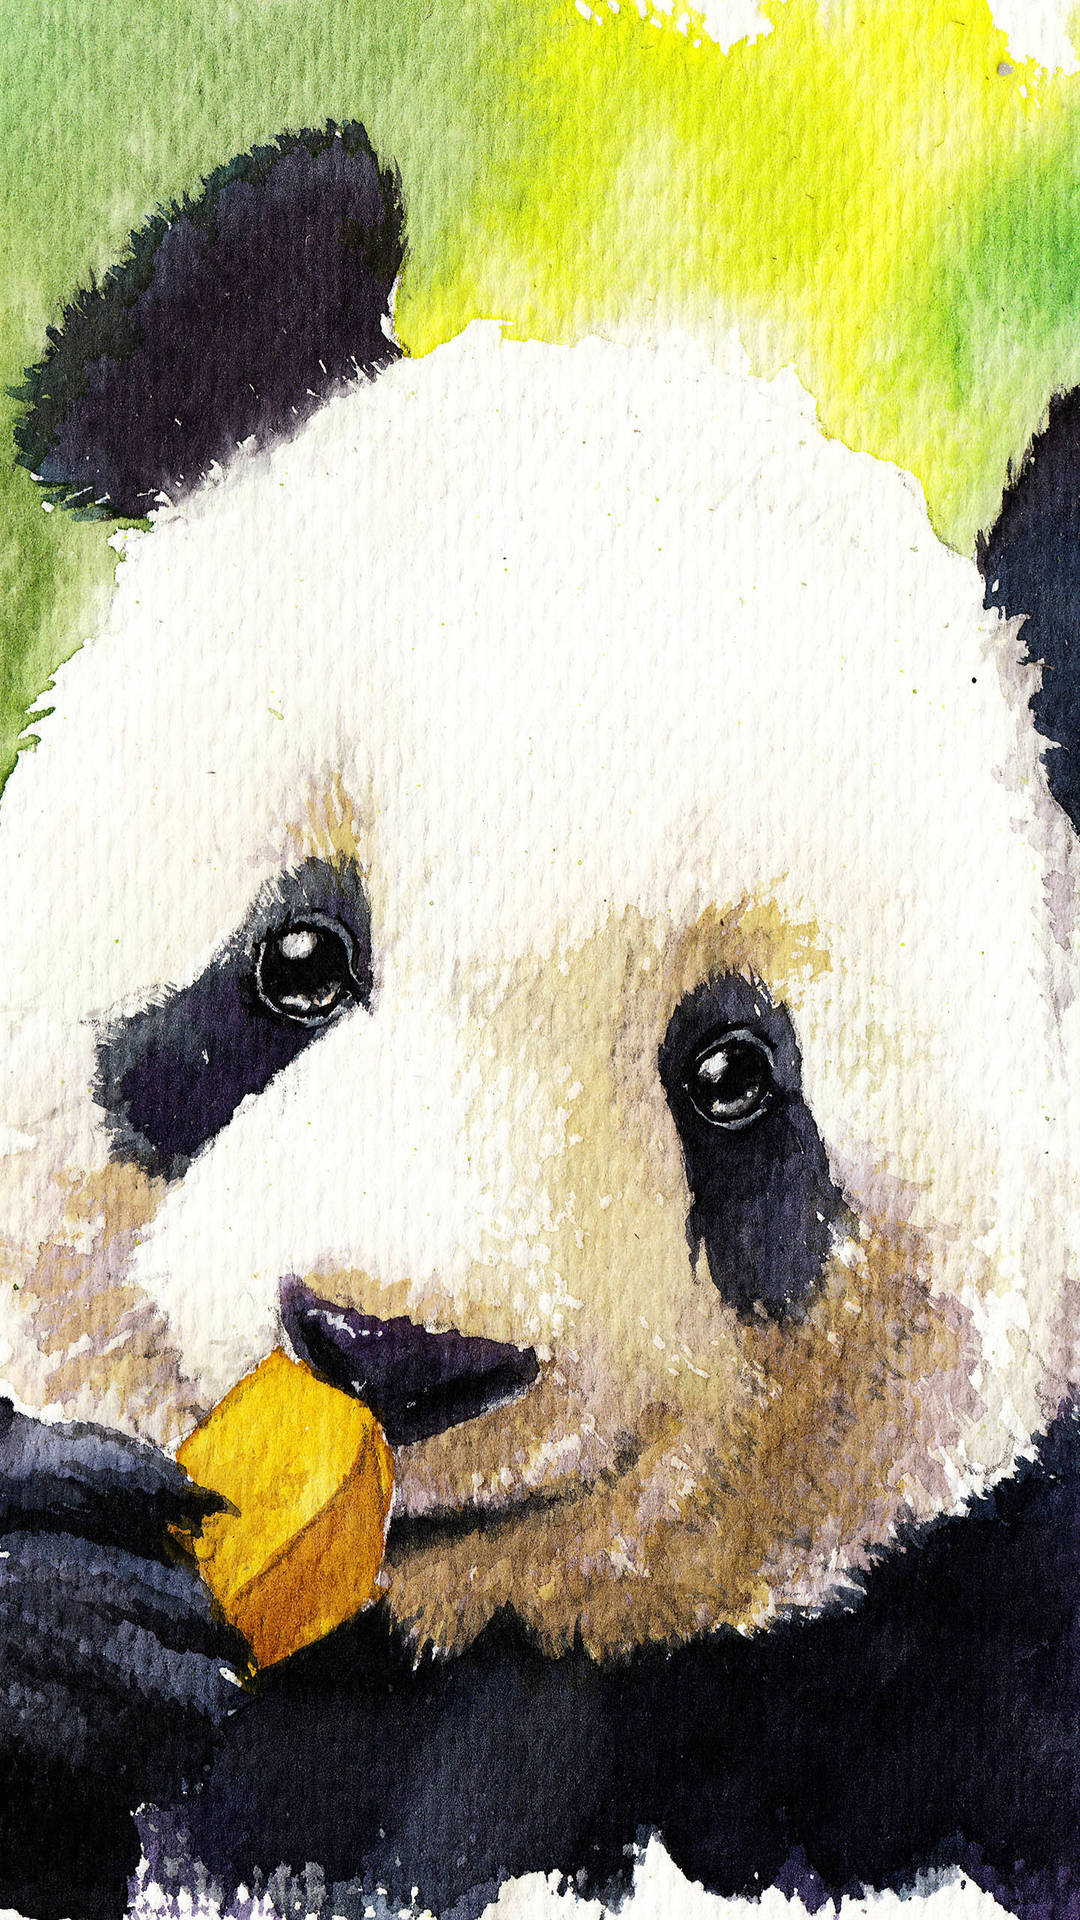 11 Cute Panda Wallpapers For IPhone With 1920x1080 Wallpaper Ipad